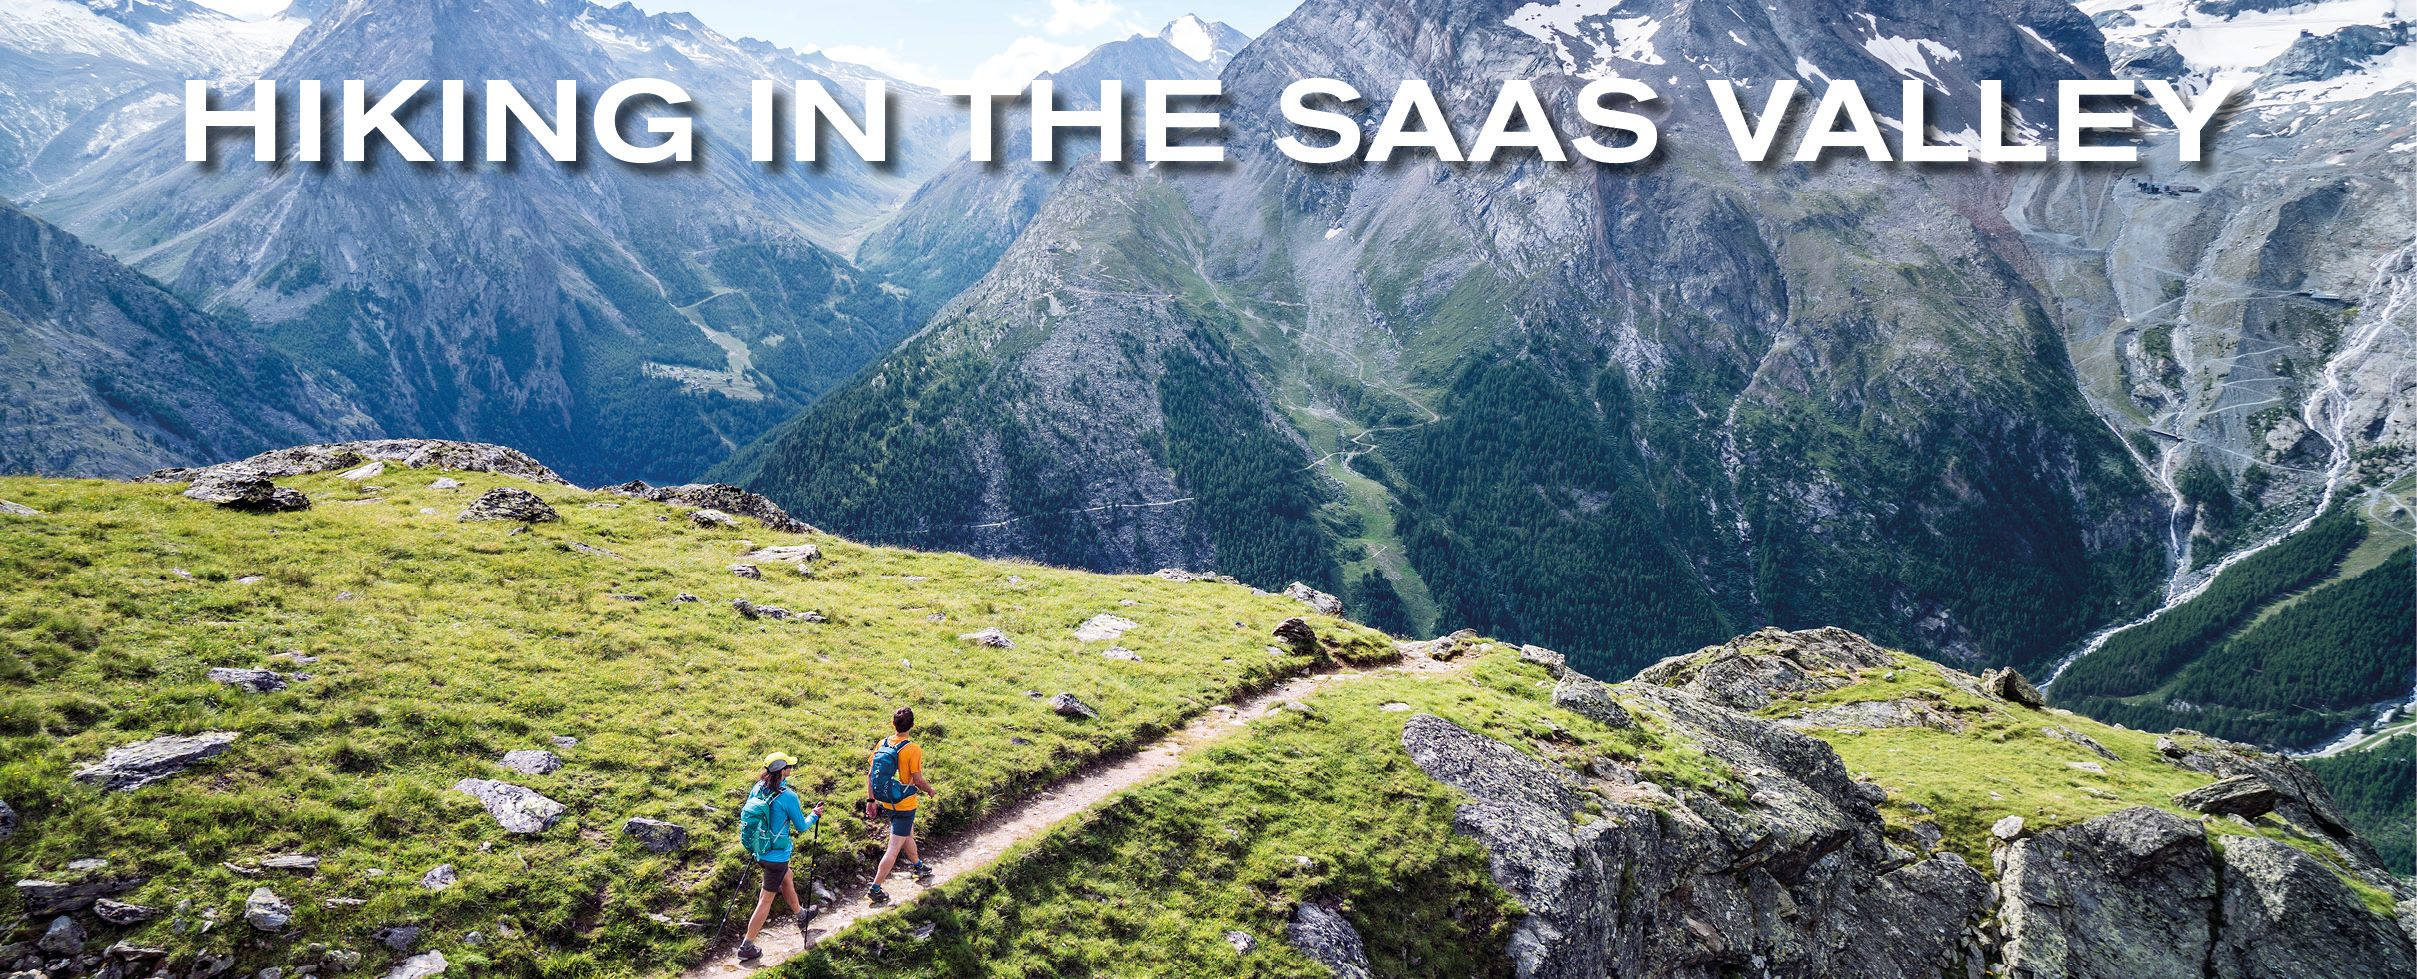 Hiking in the Saas Valley